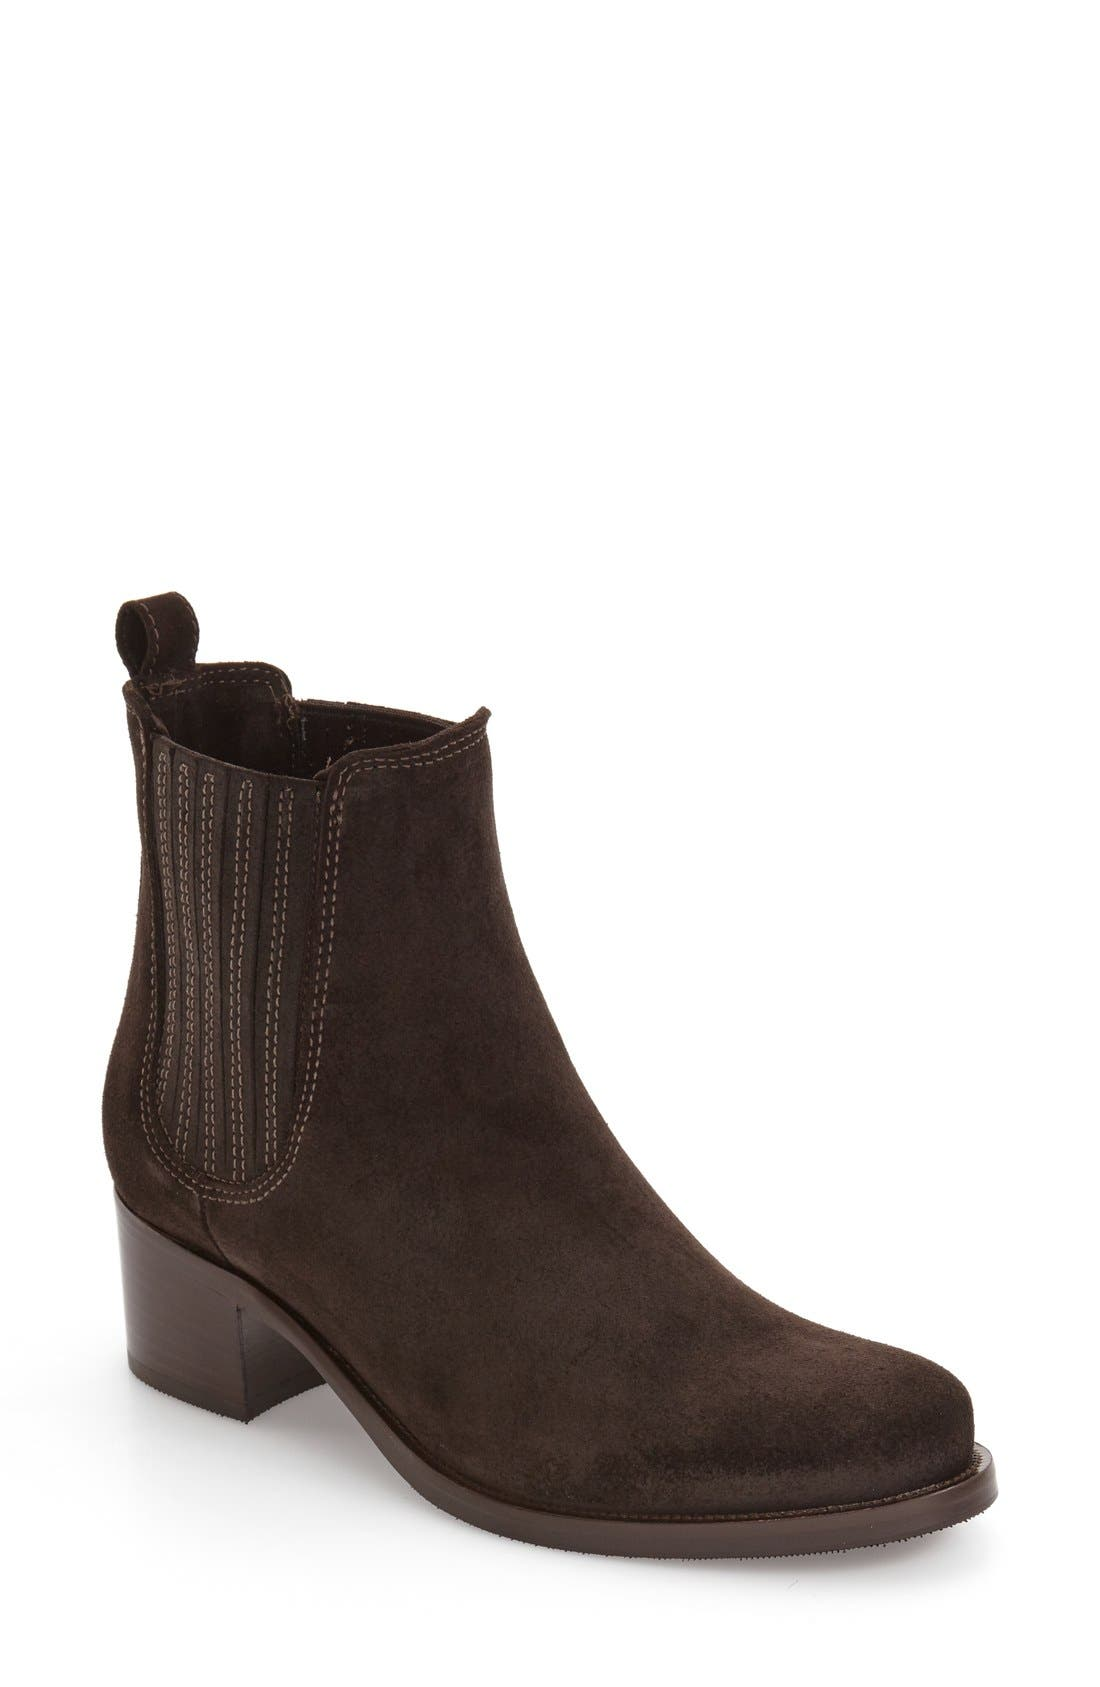 Prince Waterproof Bootie,                         Main,                         color, Brown Suede